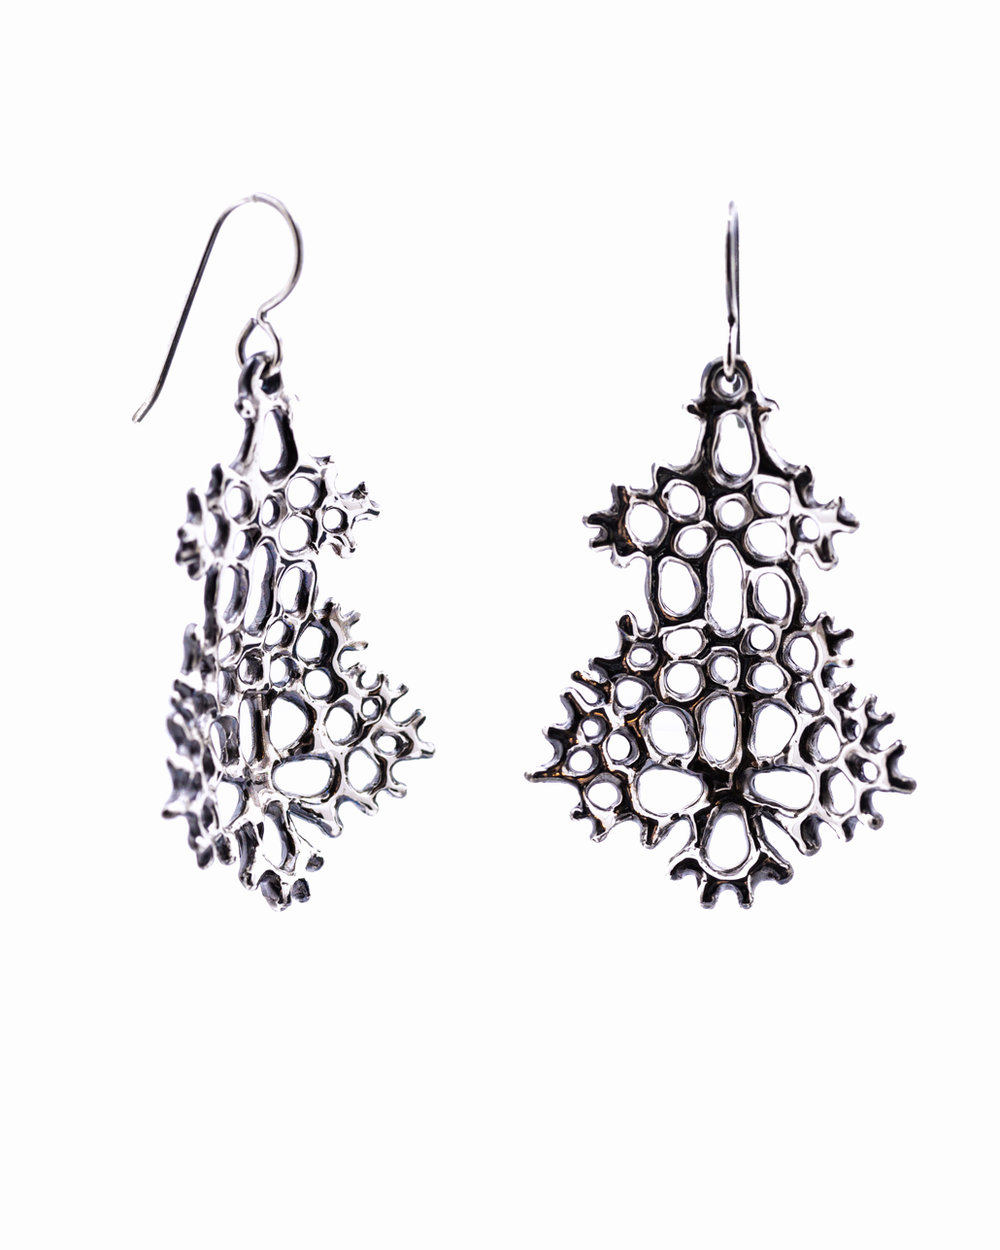 Large Radial Earrings: Oxidised sterling silver.